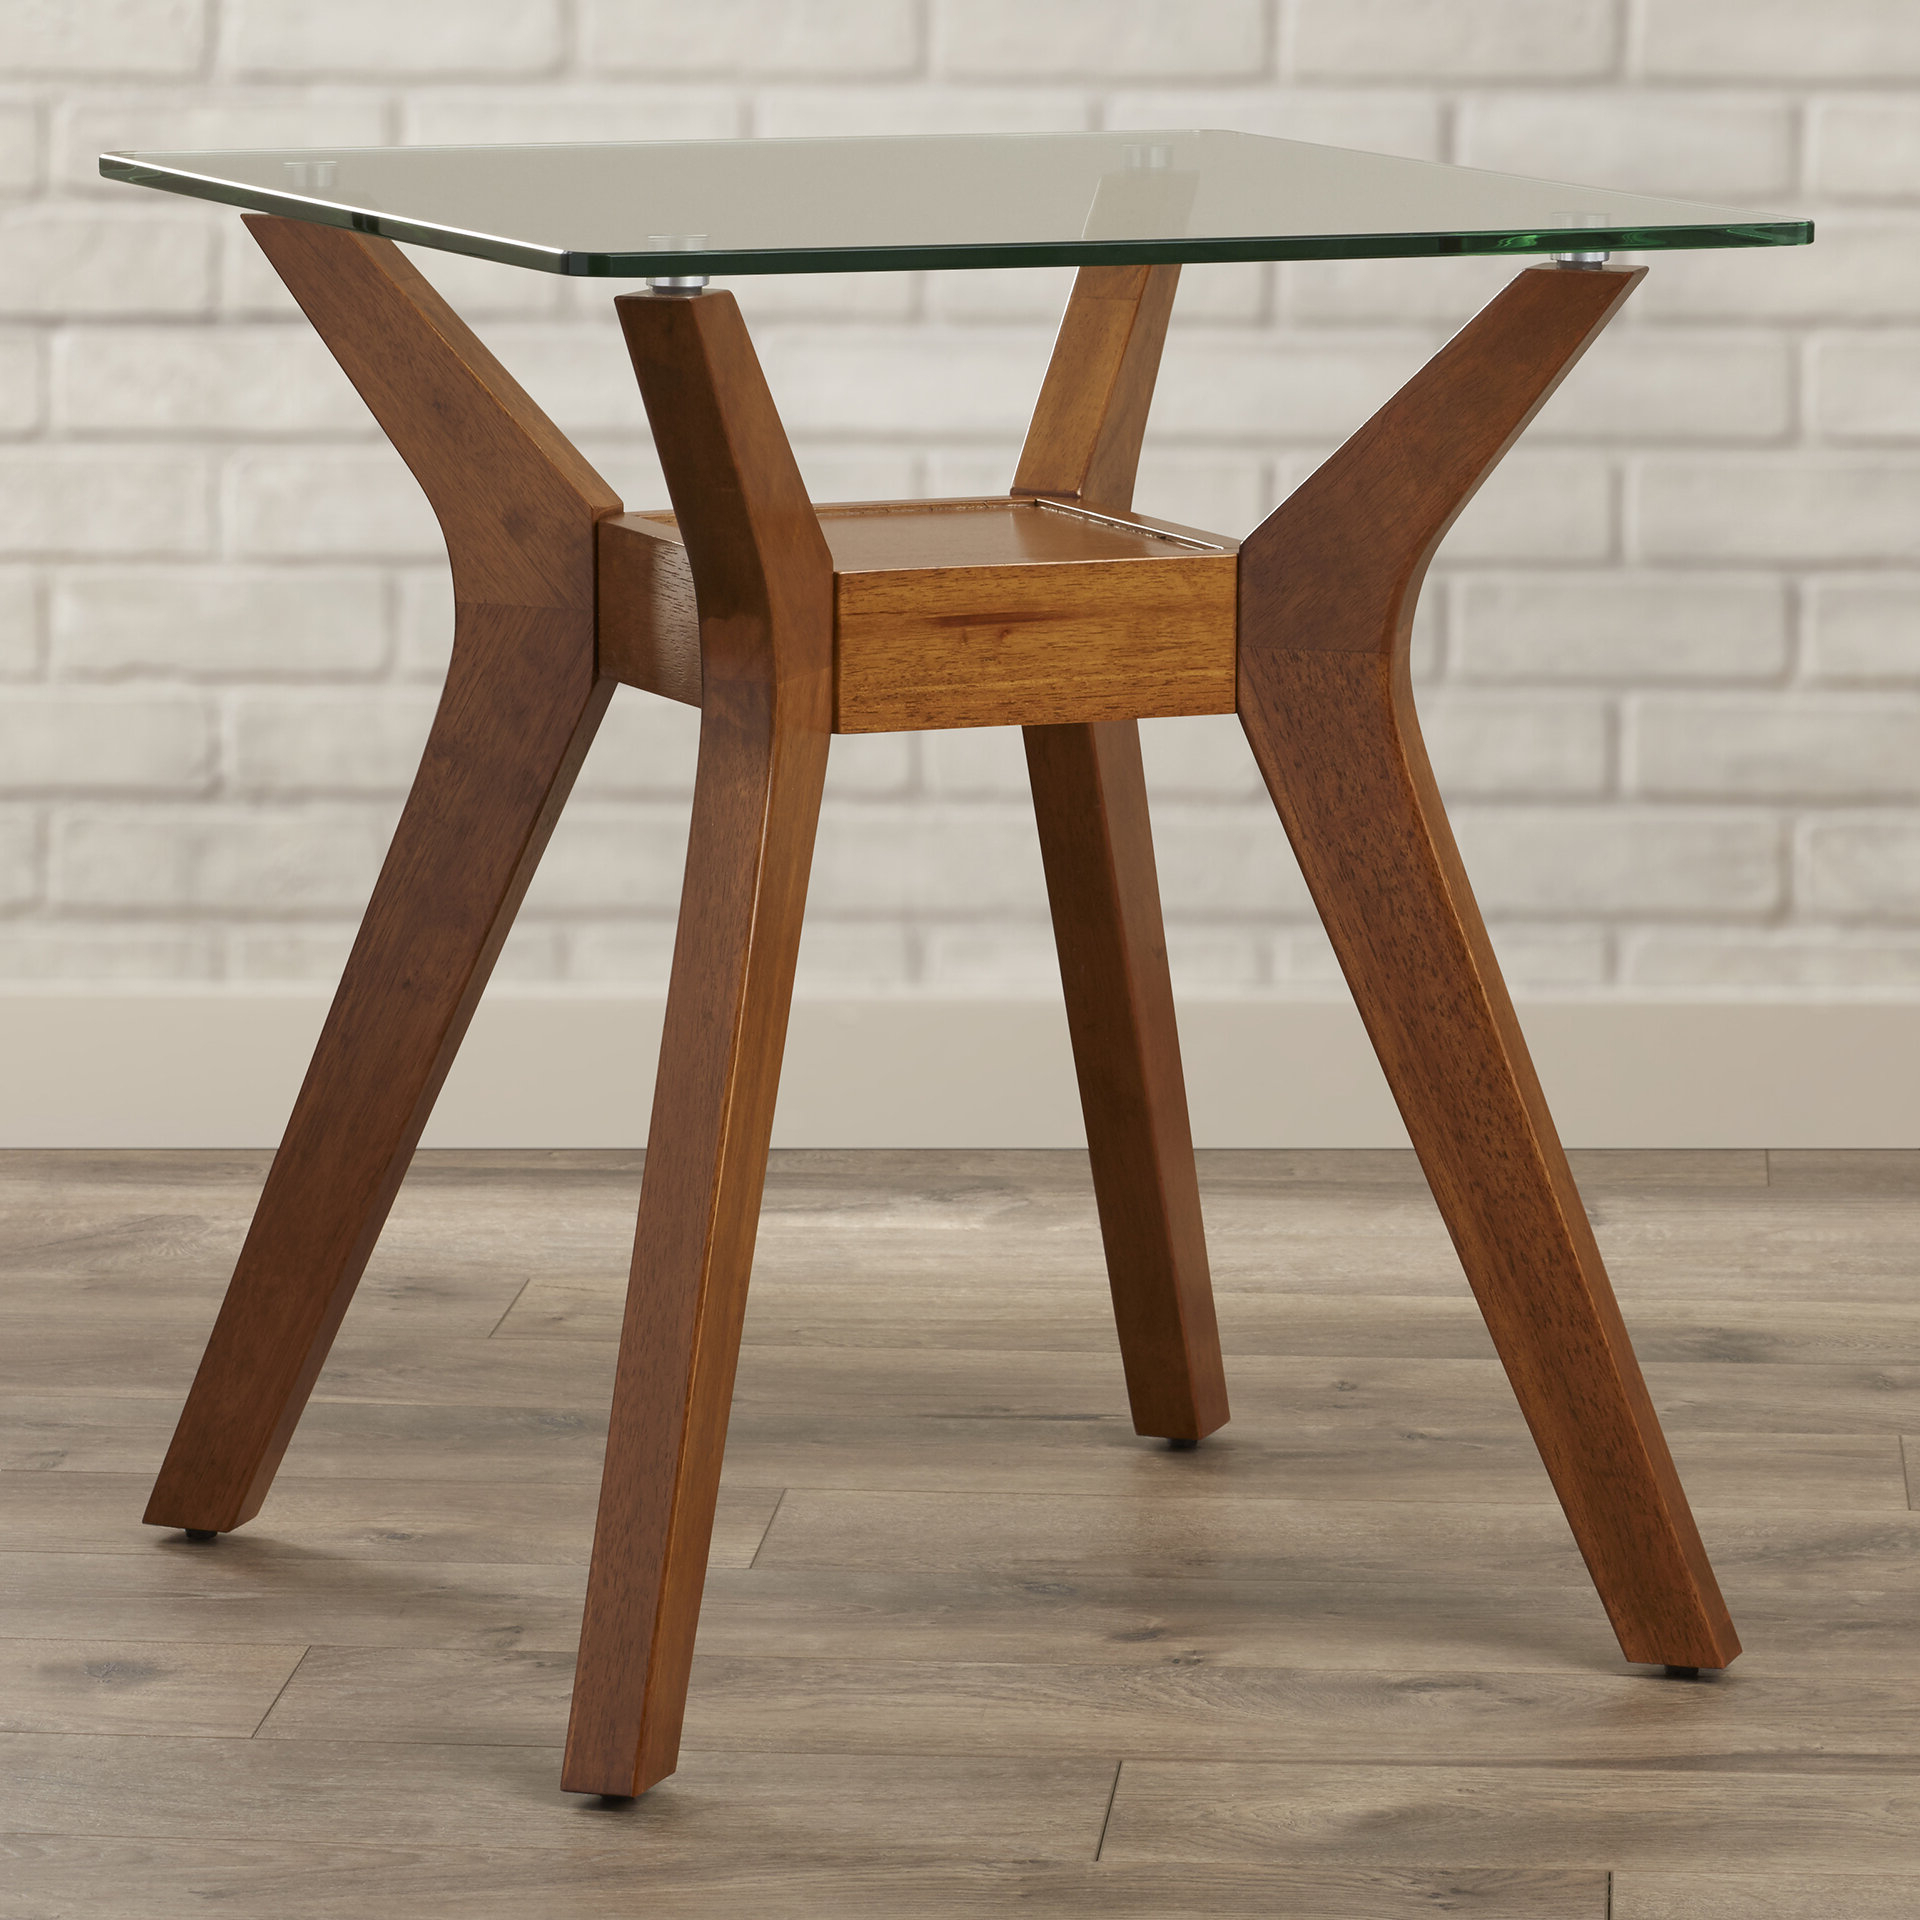 Most Popular Maliyah Glass Top End Table With Storage For Maliyah Wooden Garden Benches (View 18 of 30)